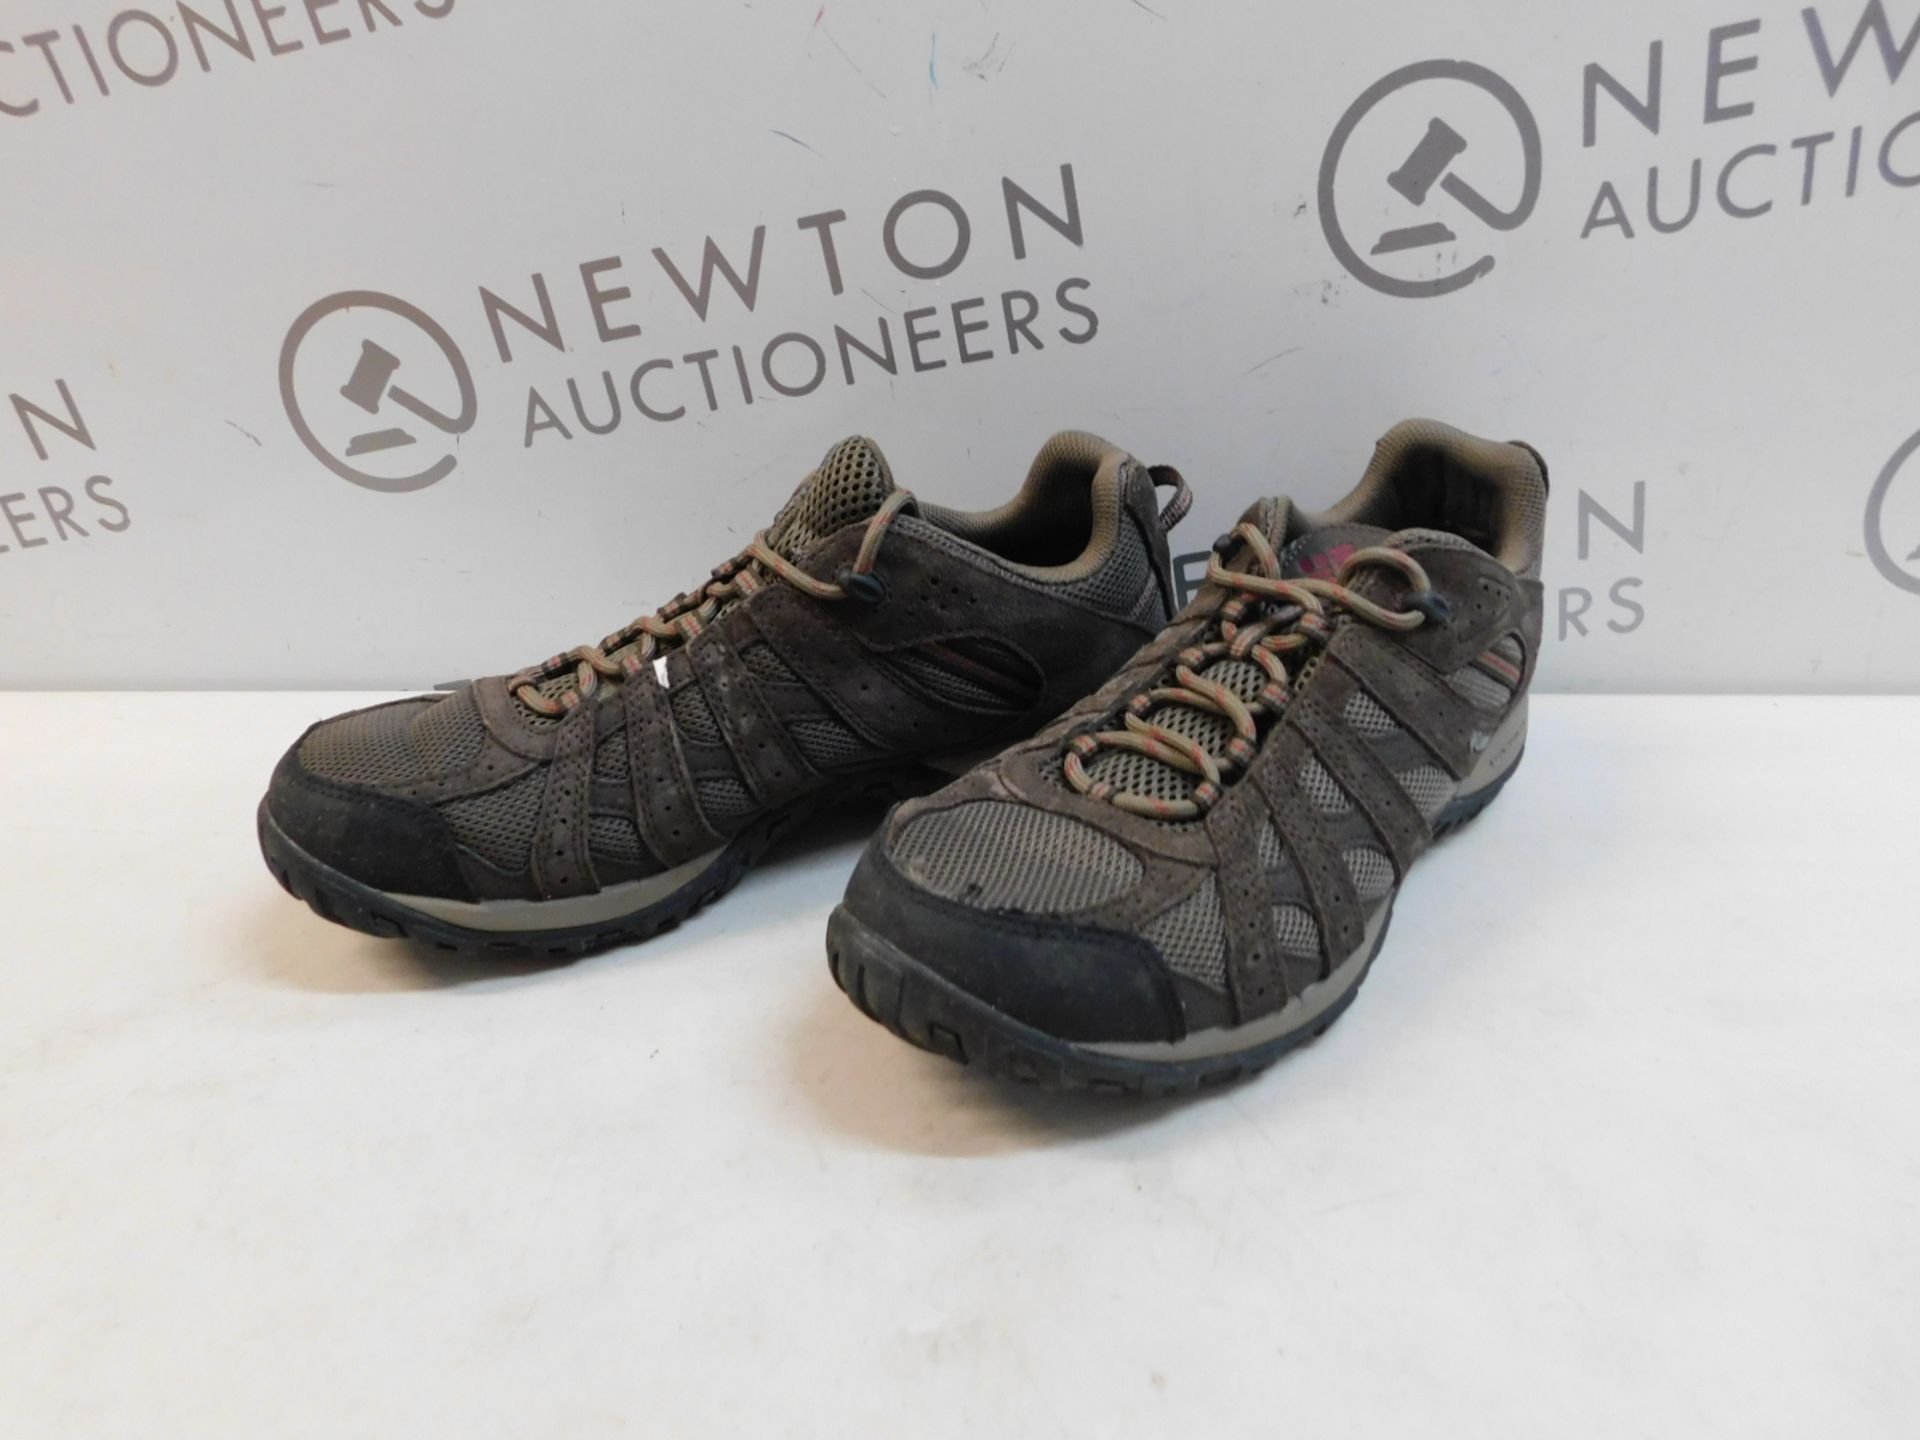 1 PAIR OF MENS COLUMBIA TECHLITE SHOES UK SIZE 10 RRP £79